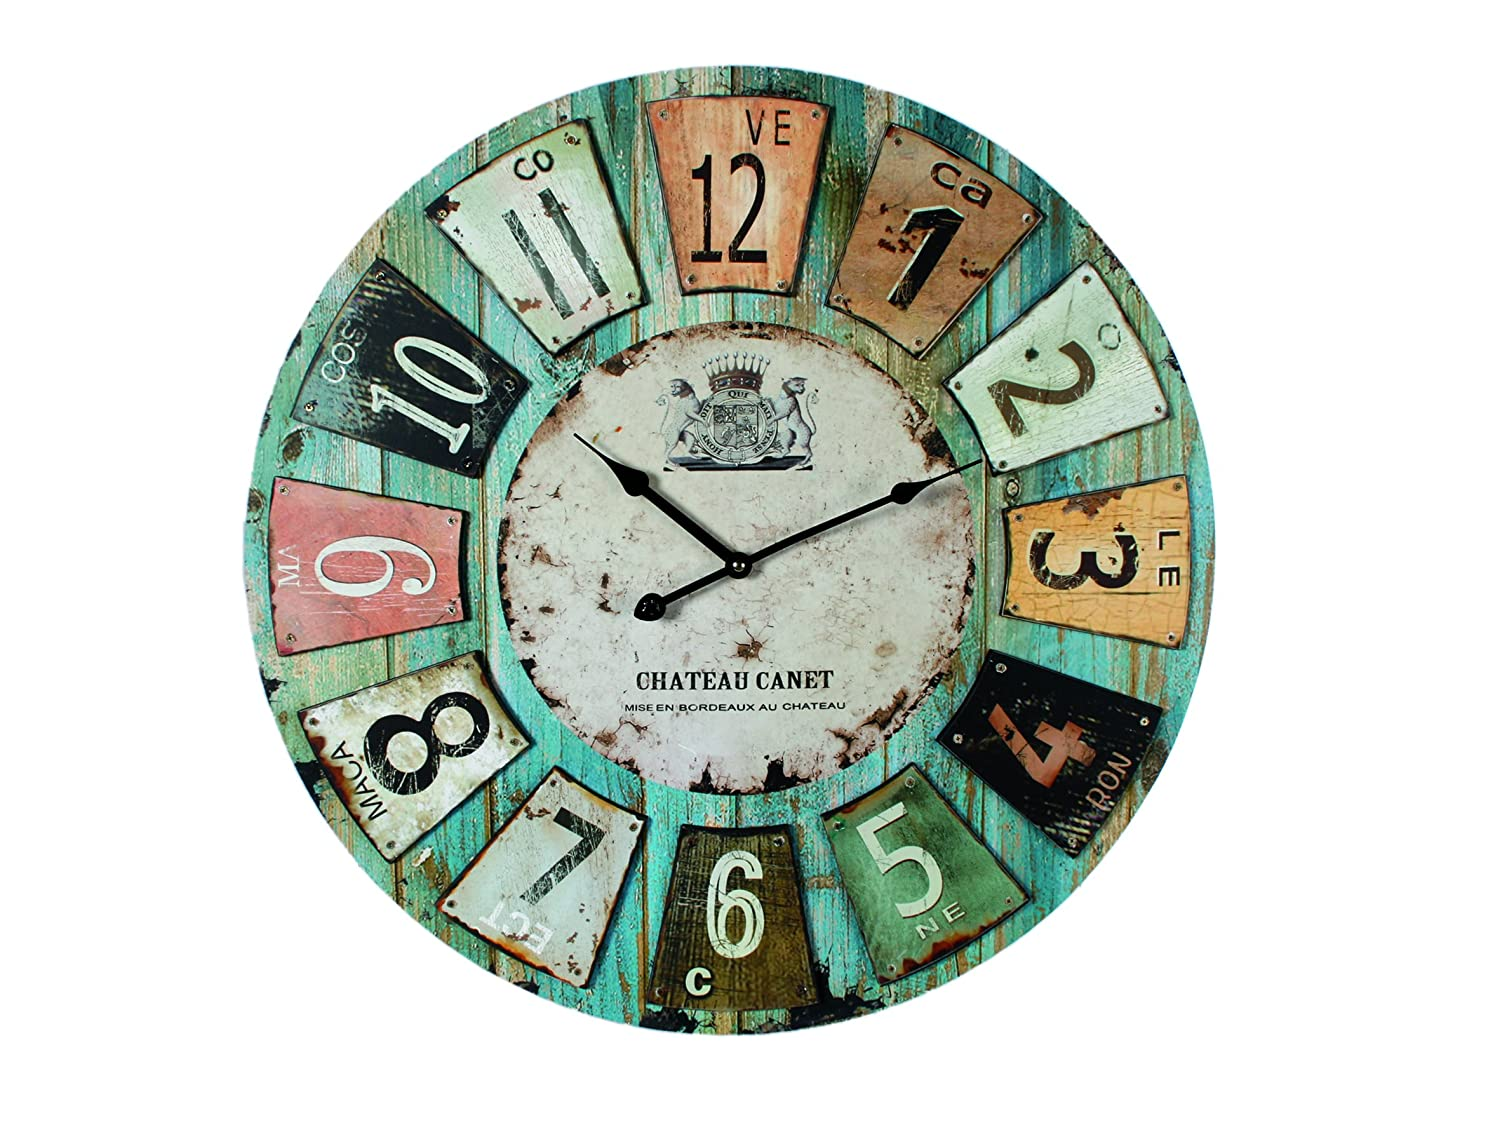 wooden wall clock antique style chateau 60cm diameter 24 inches ebay. Black Bedroom Furniture Sets. Home Design Ideas